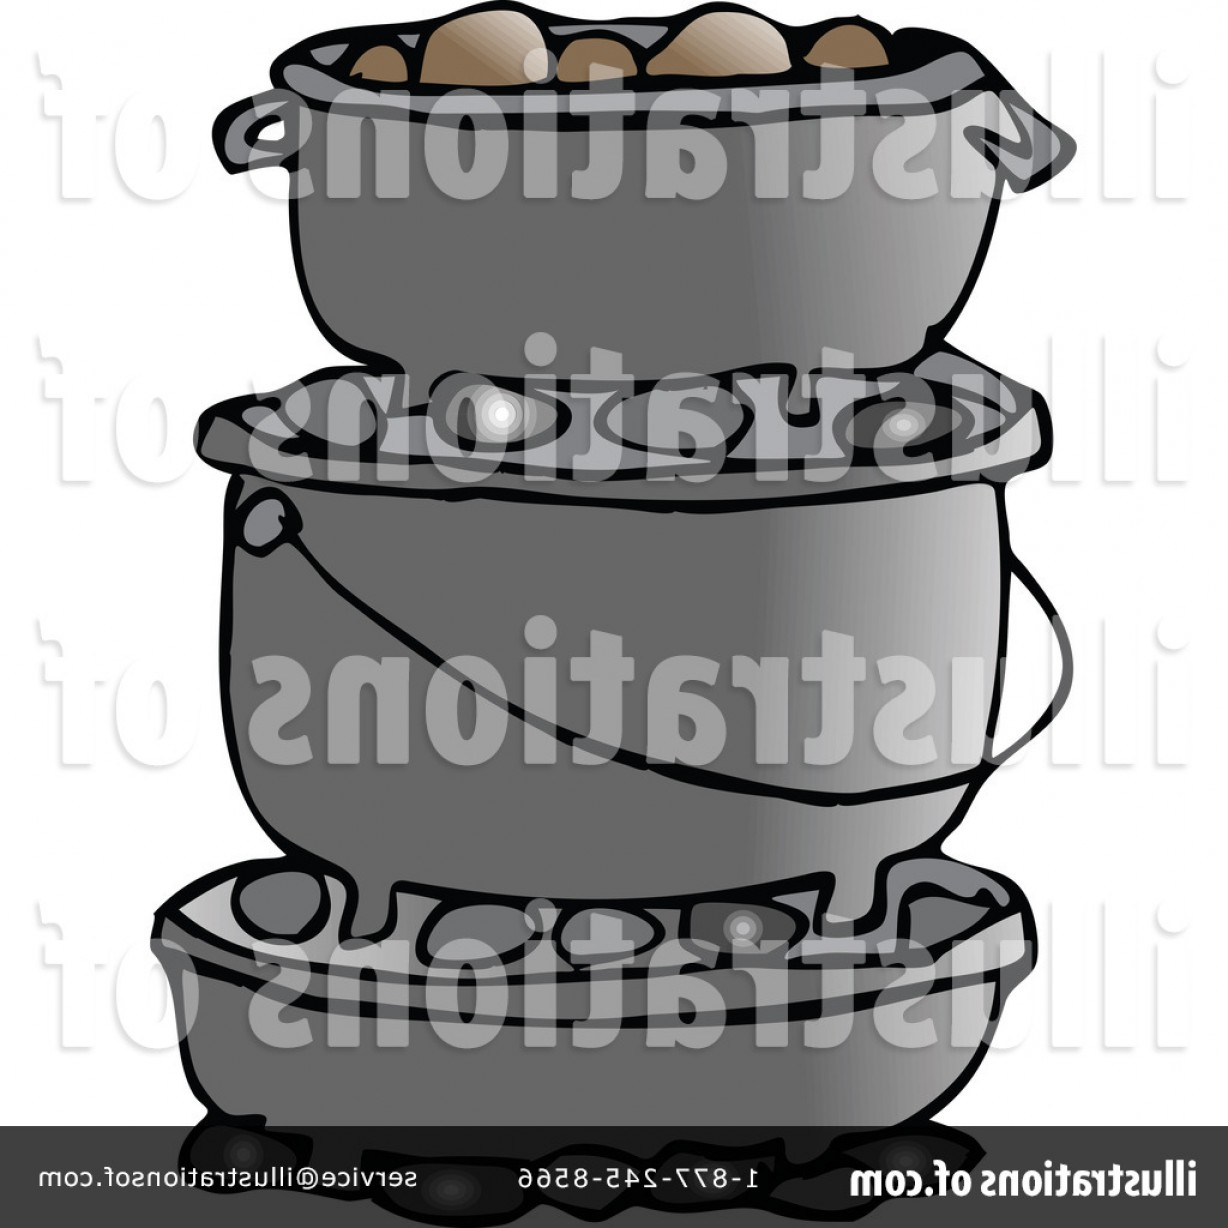 Free Royalty Free Dutch Oven Clipart Illustration Design.